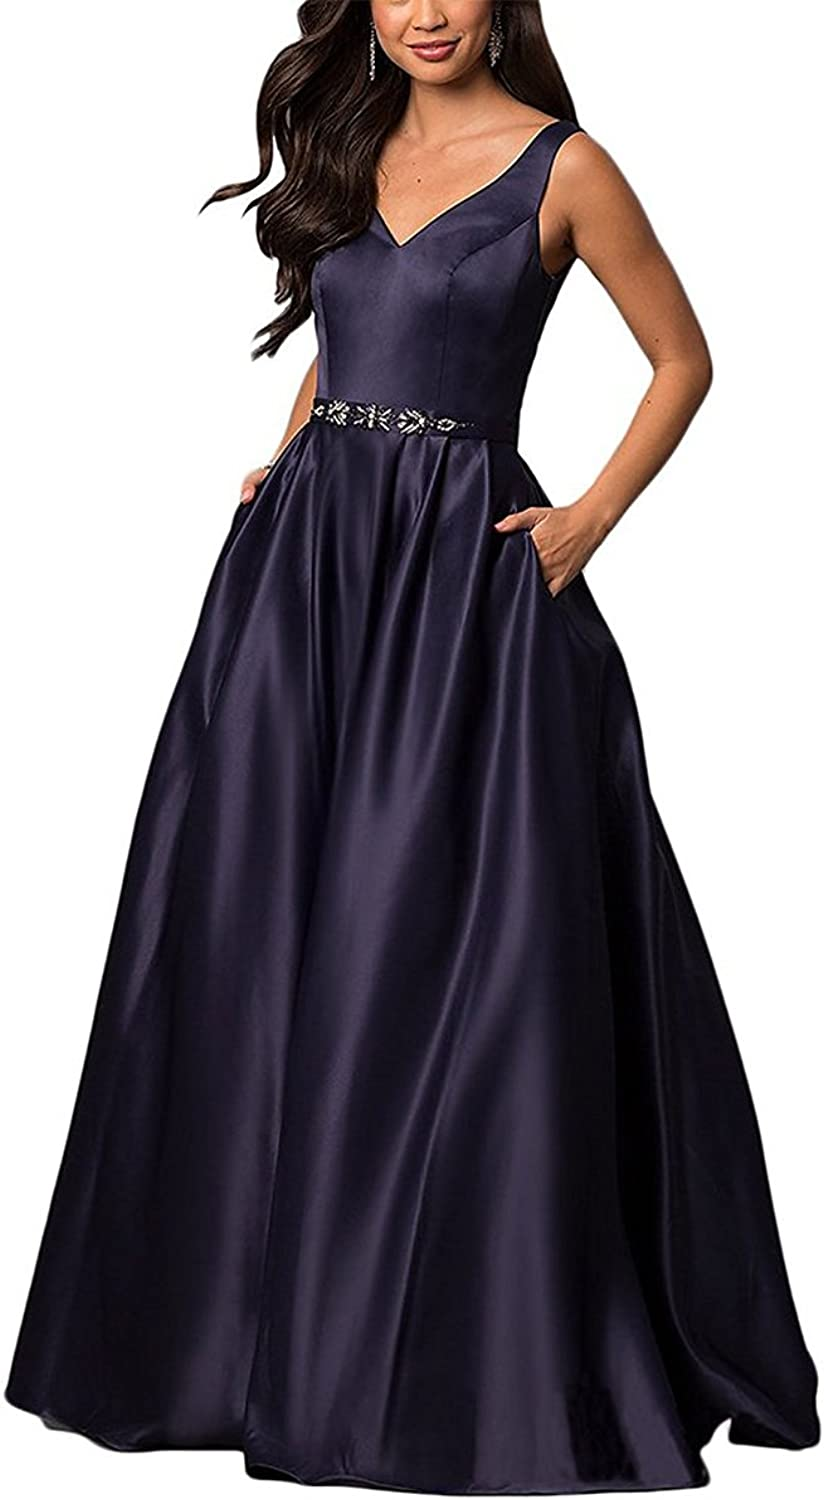 LL Bridal Women's Spaghetti Strap V Neck Prom Dresses 2018 Long Formal Evening Party Ball Gown LLP108